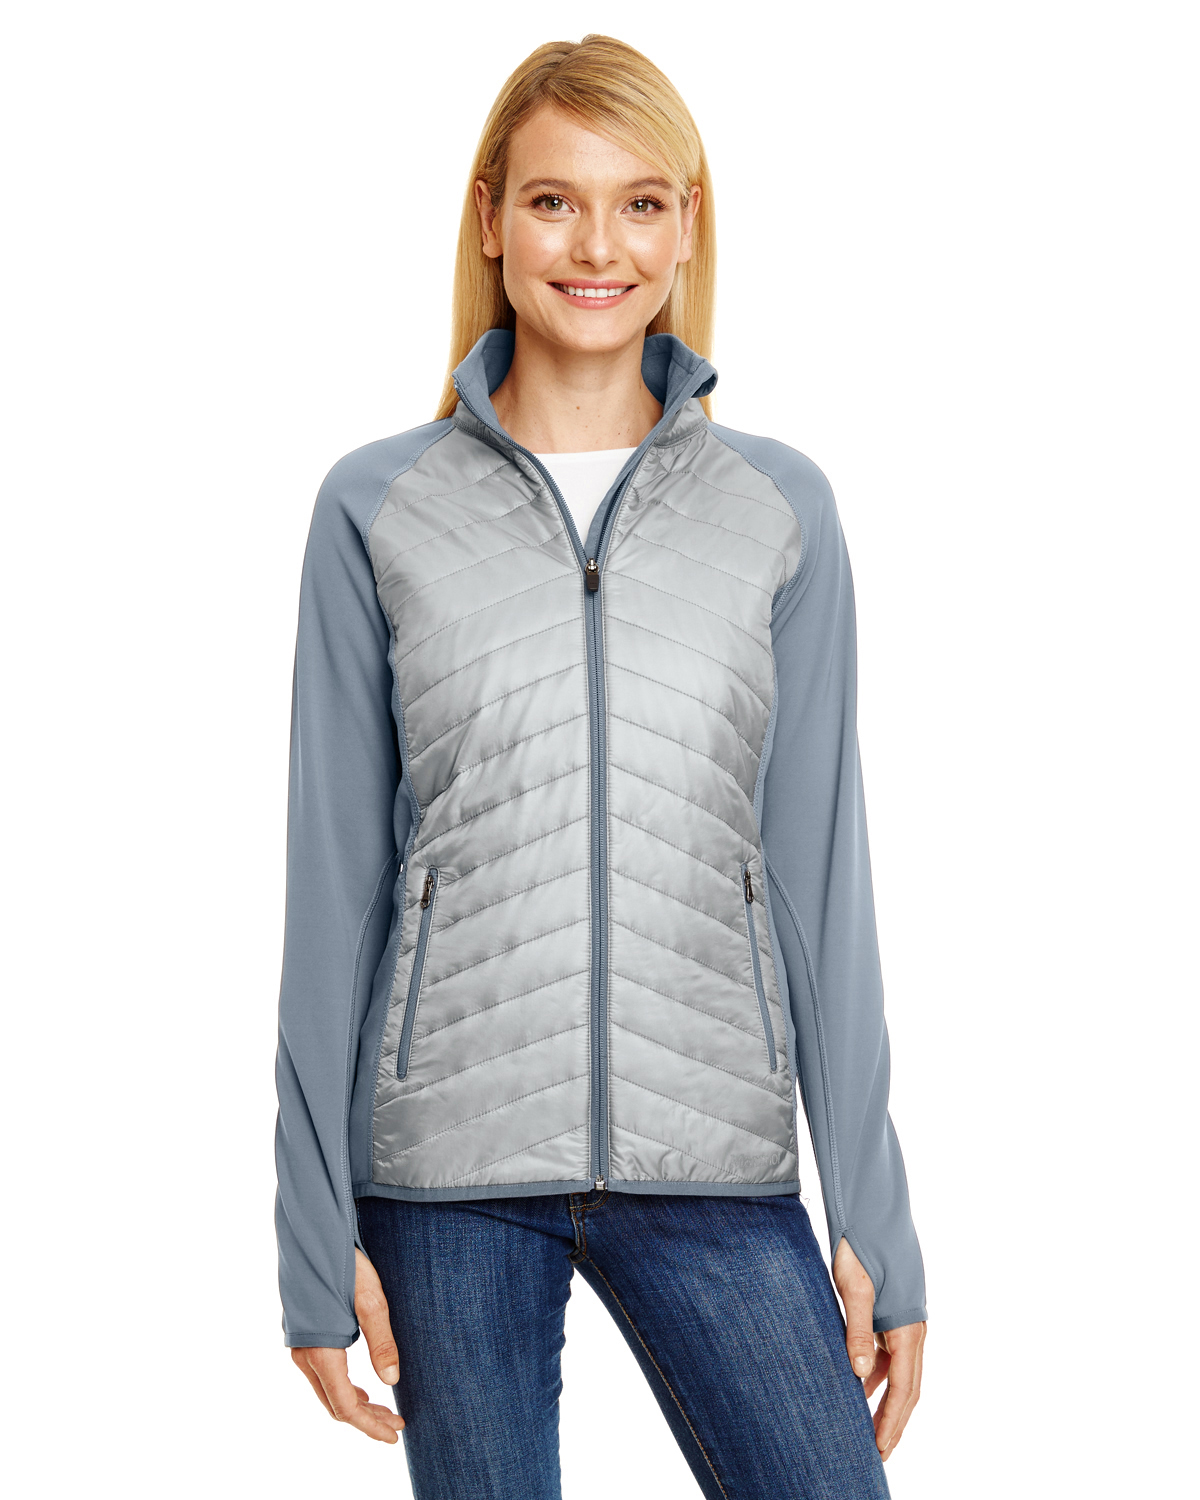 Marmot - 900290, Ladies' Variant Jacket, Embroidery, Screen Printing - Logo Masters International